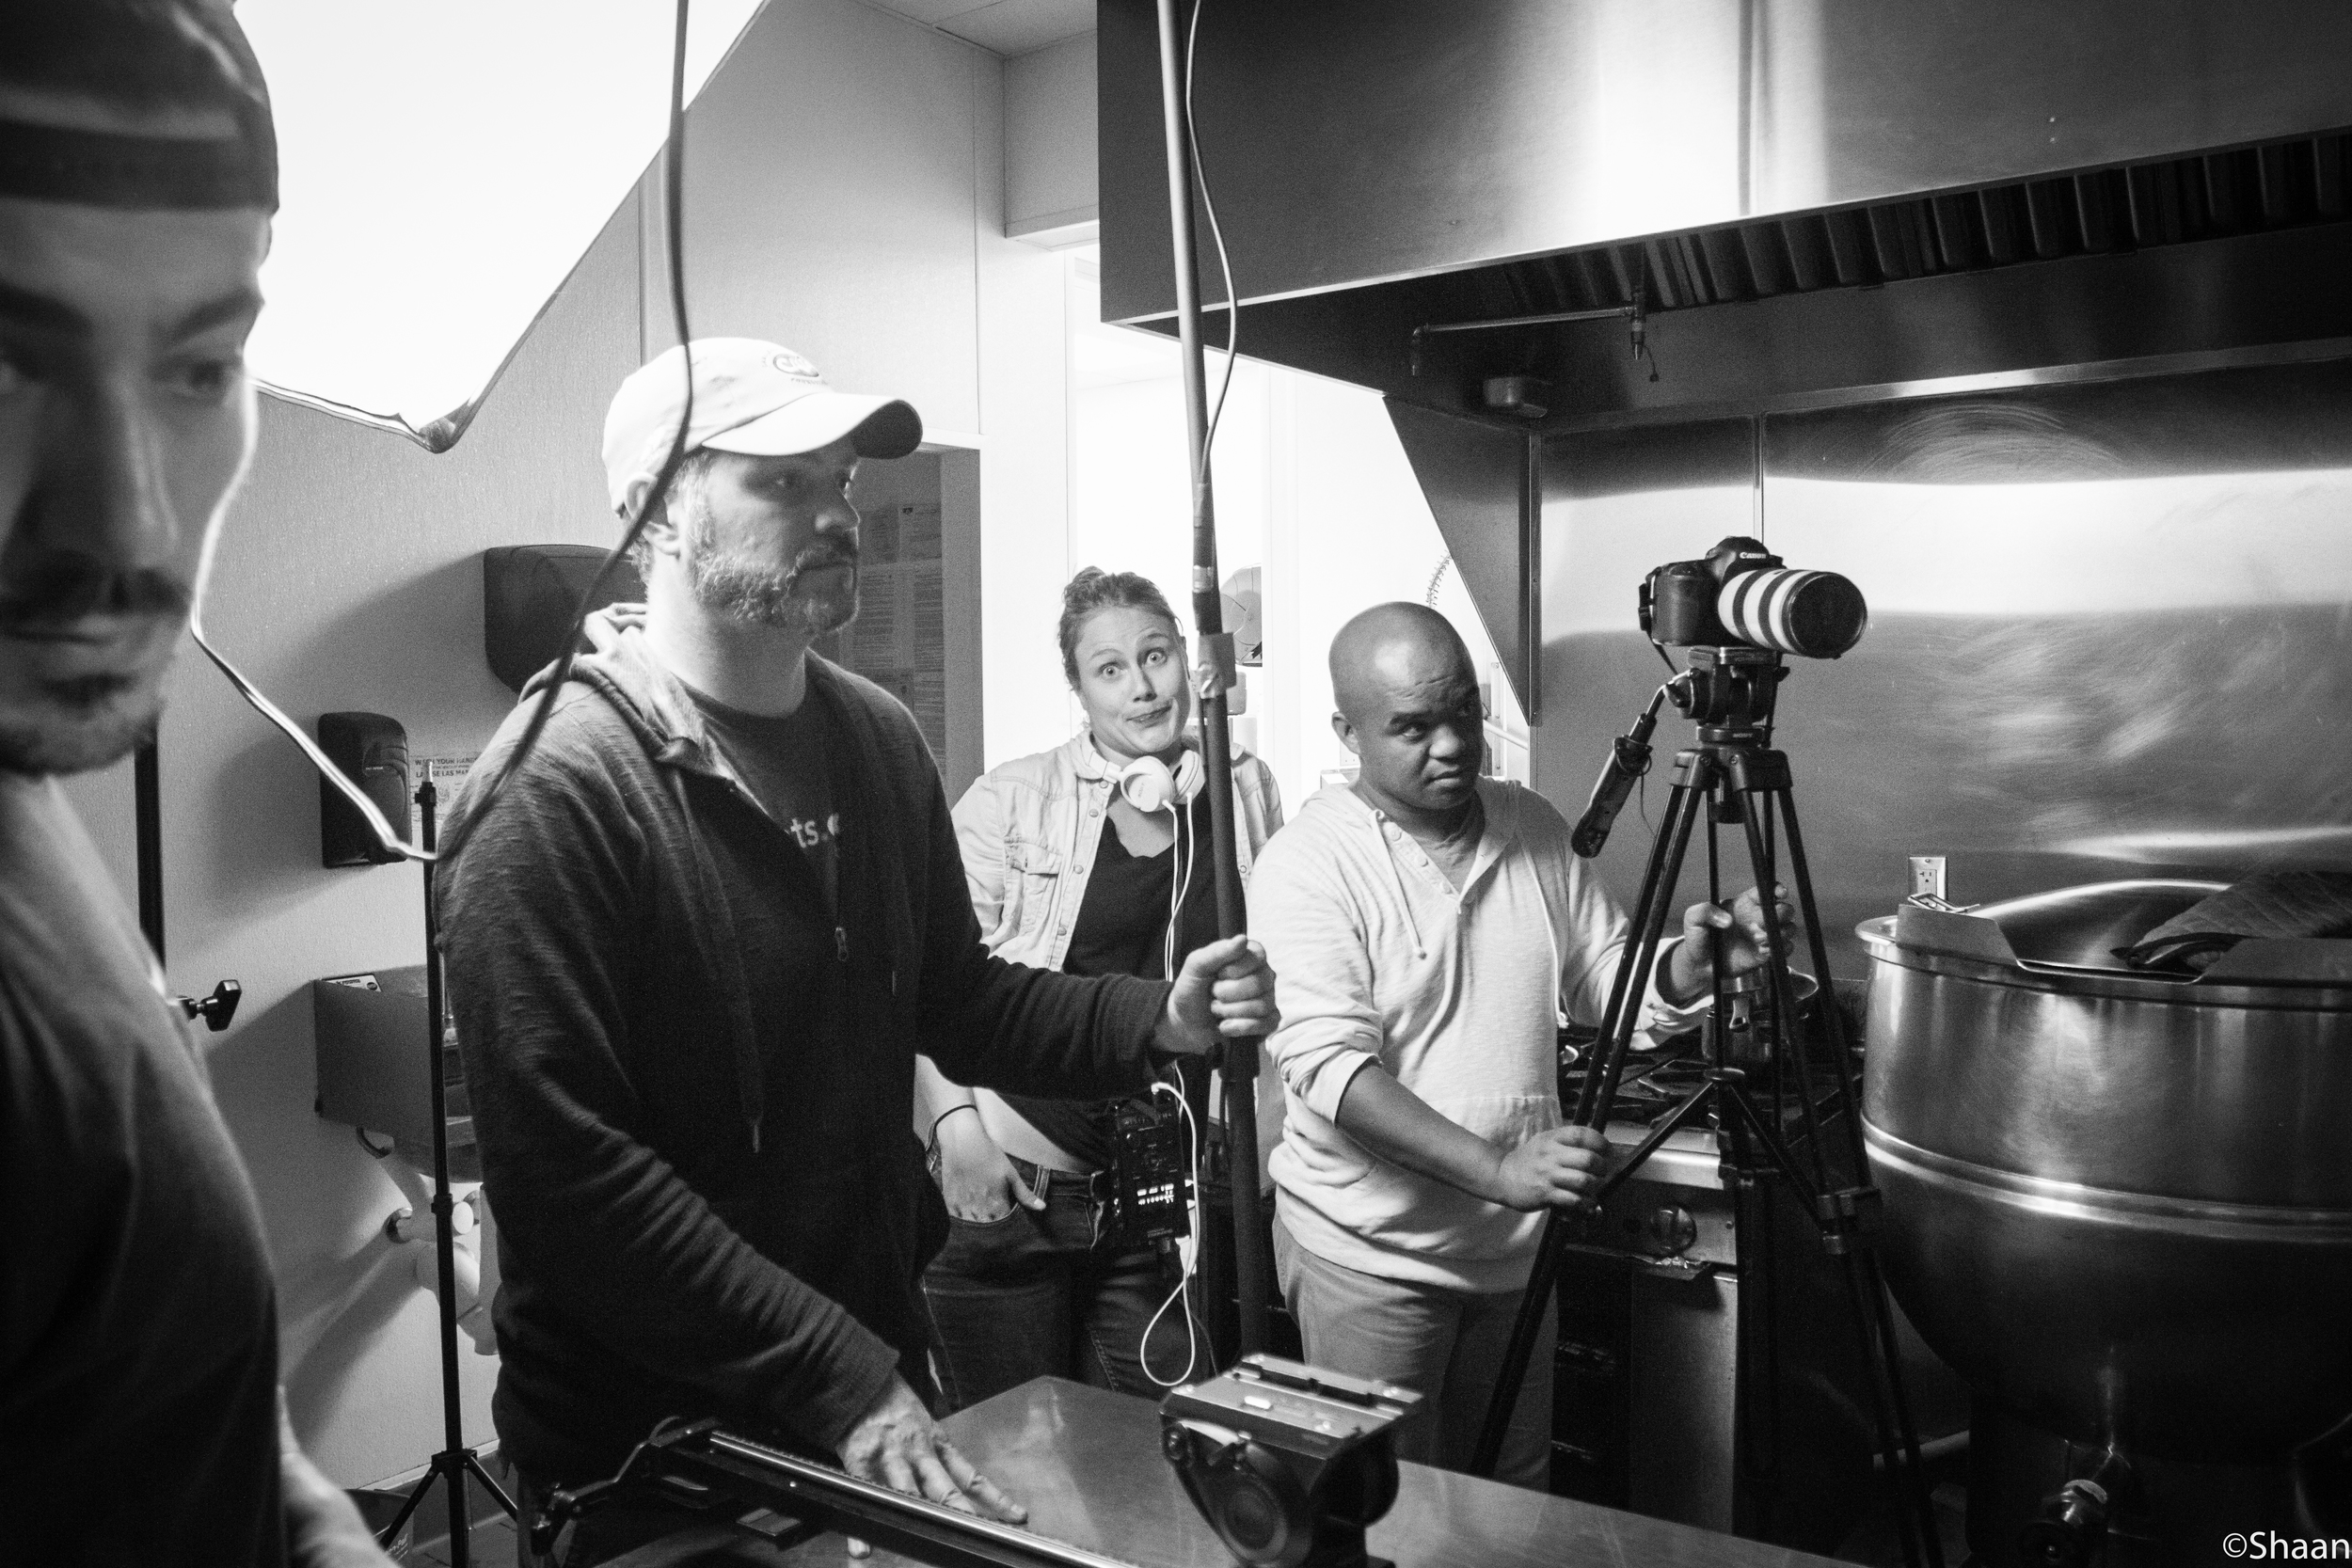 Producer Michael S. Mauger, Editor Alix Duchene, and Director of Photography David Brooks prepare for the next take. (Photo: Shaan Couture)